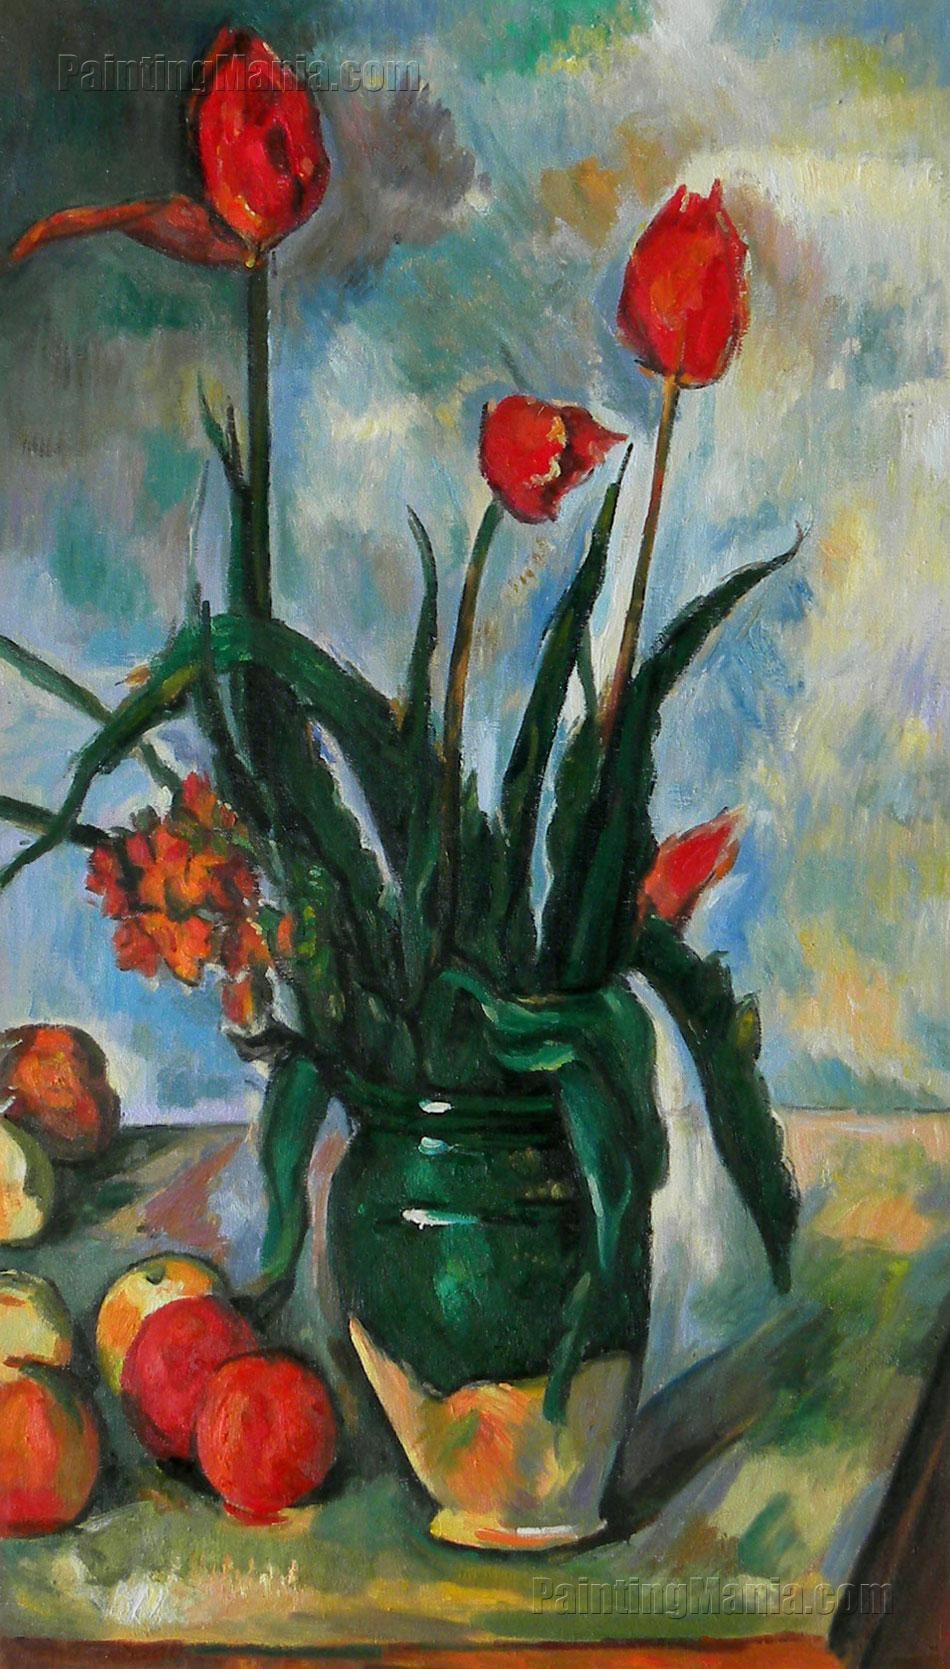 the blue vase paul cezanne of chasingtailfeathers tulips in a vase1888 1890 by paul cazanne inside chasingtailfeathers tulips in a vase1888 1890 by paul cazanne norton simon museum